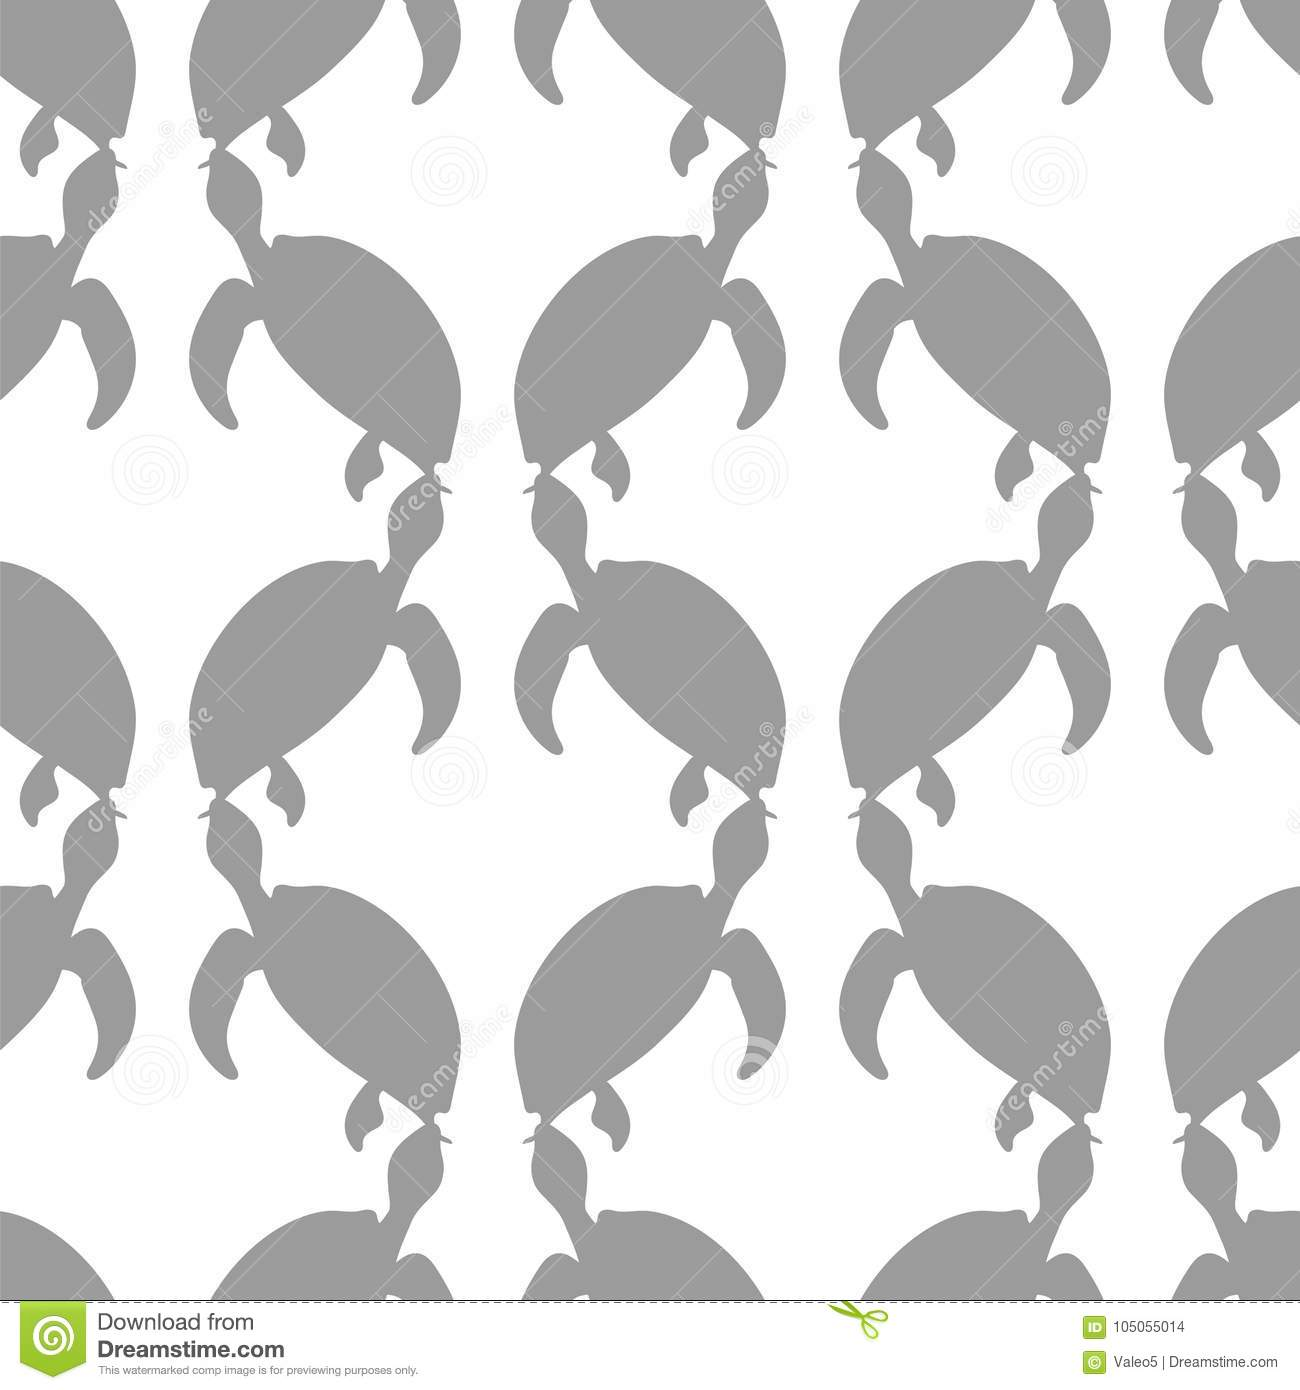 b1486bcd0 Ocean Turtle Icon Seamless Pattern Isolated on White Background. Sea  Graphic Simple Animal Logo. More similar stock illustrations